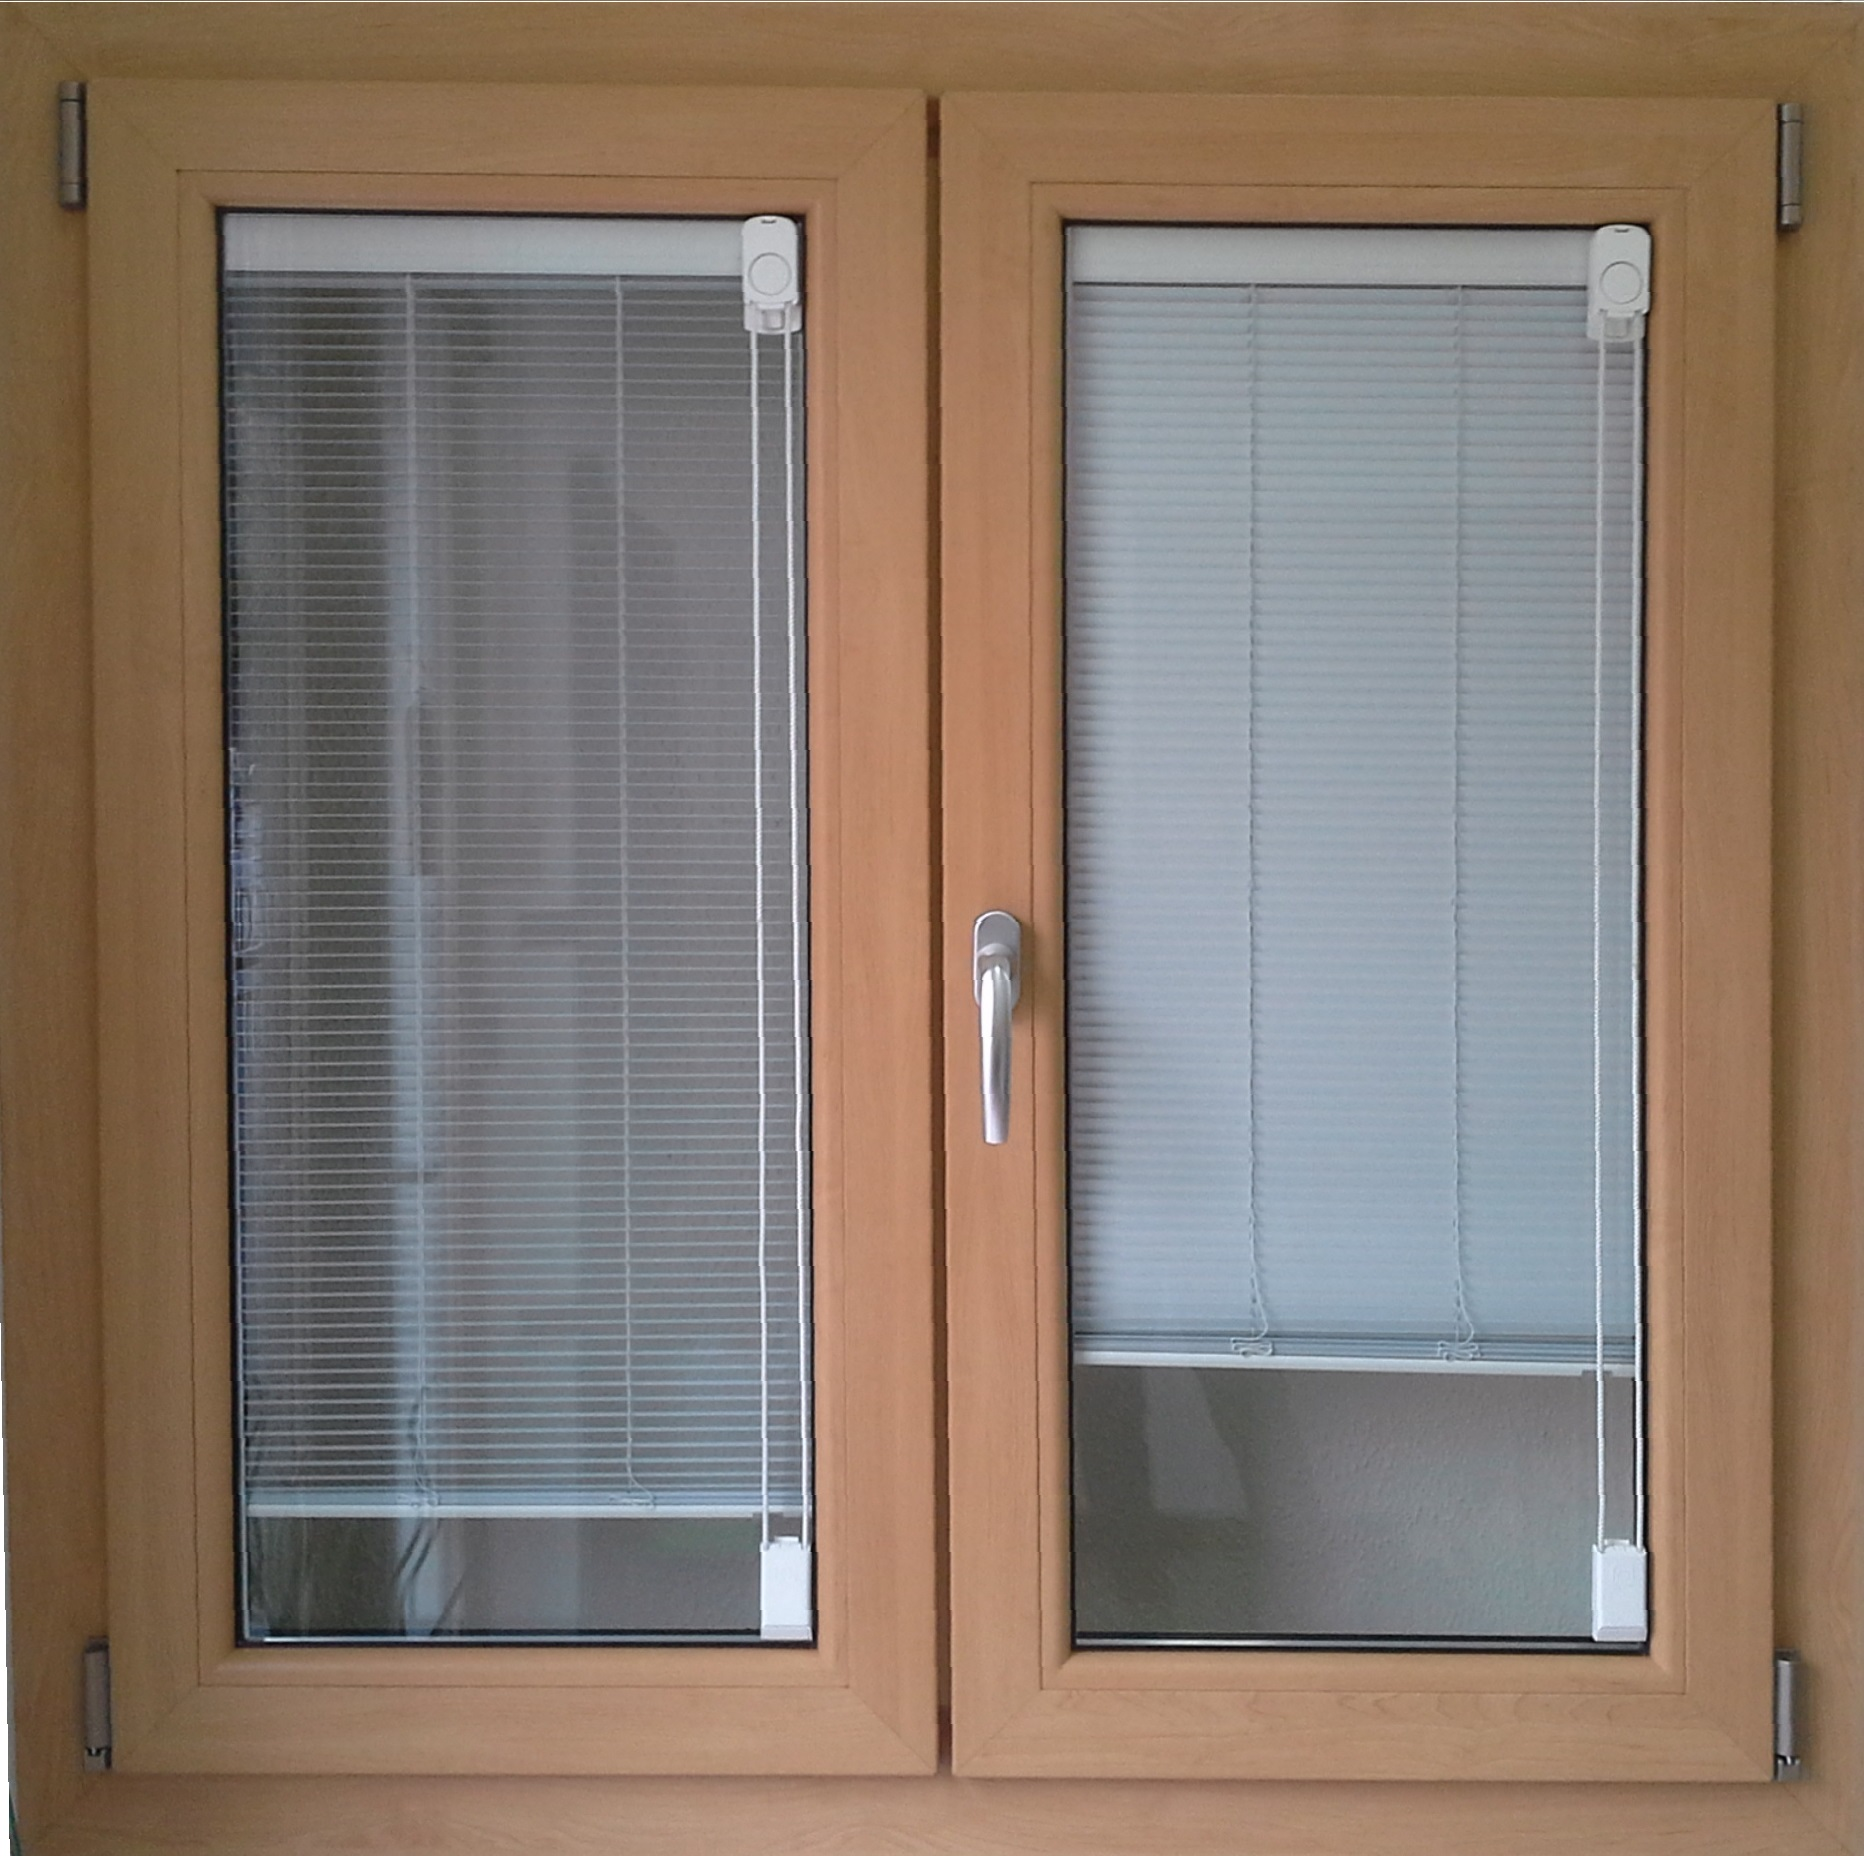 Porte finestre in pvc costi good la with porte finestre for Infissi in pvc costi